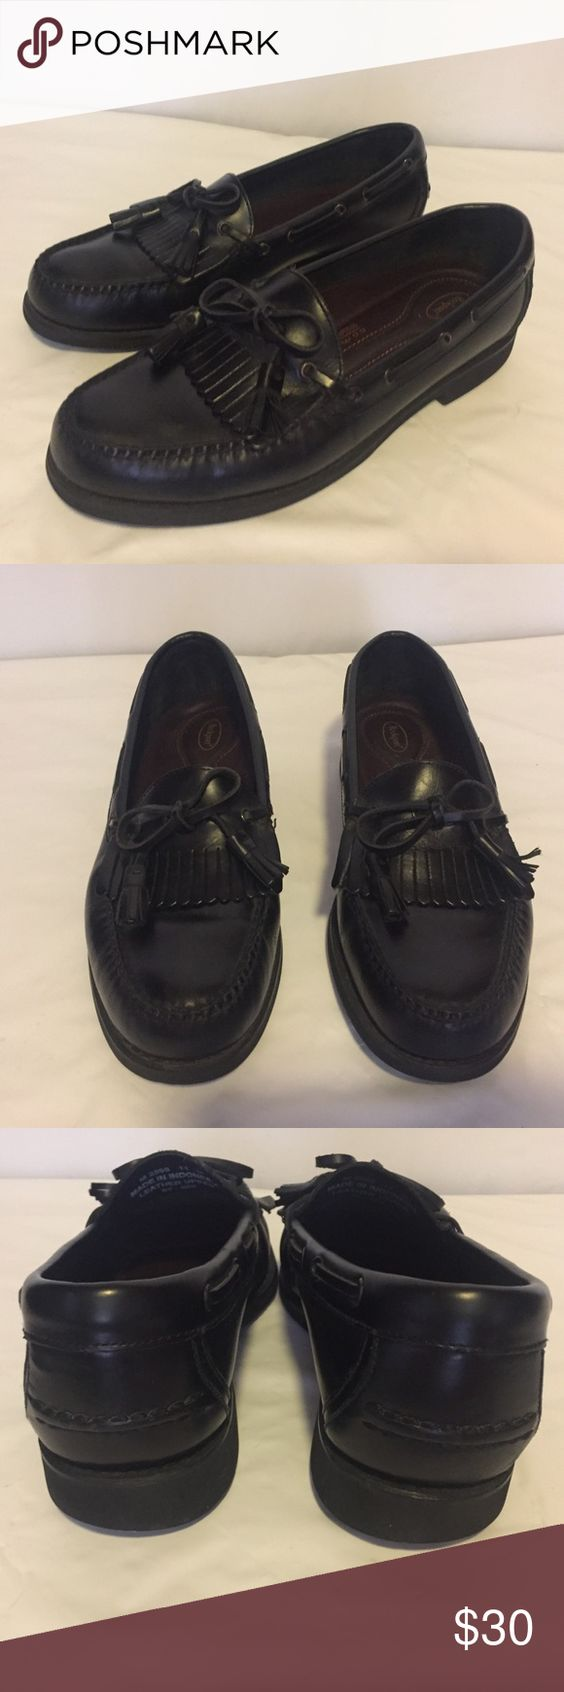 I just added this listing on Poshmark: Rockport Comfort DMX Tassel Dress Shoe Black Sz 11. #shopmycloset #poshmark #fashion #shopping #style #forsale #Rockport #Other